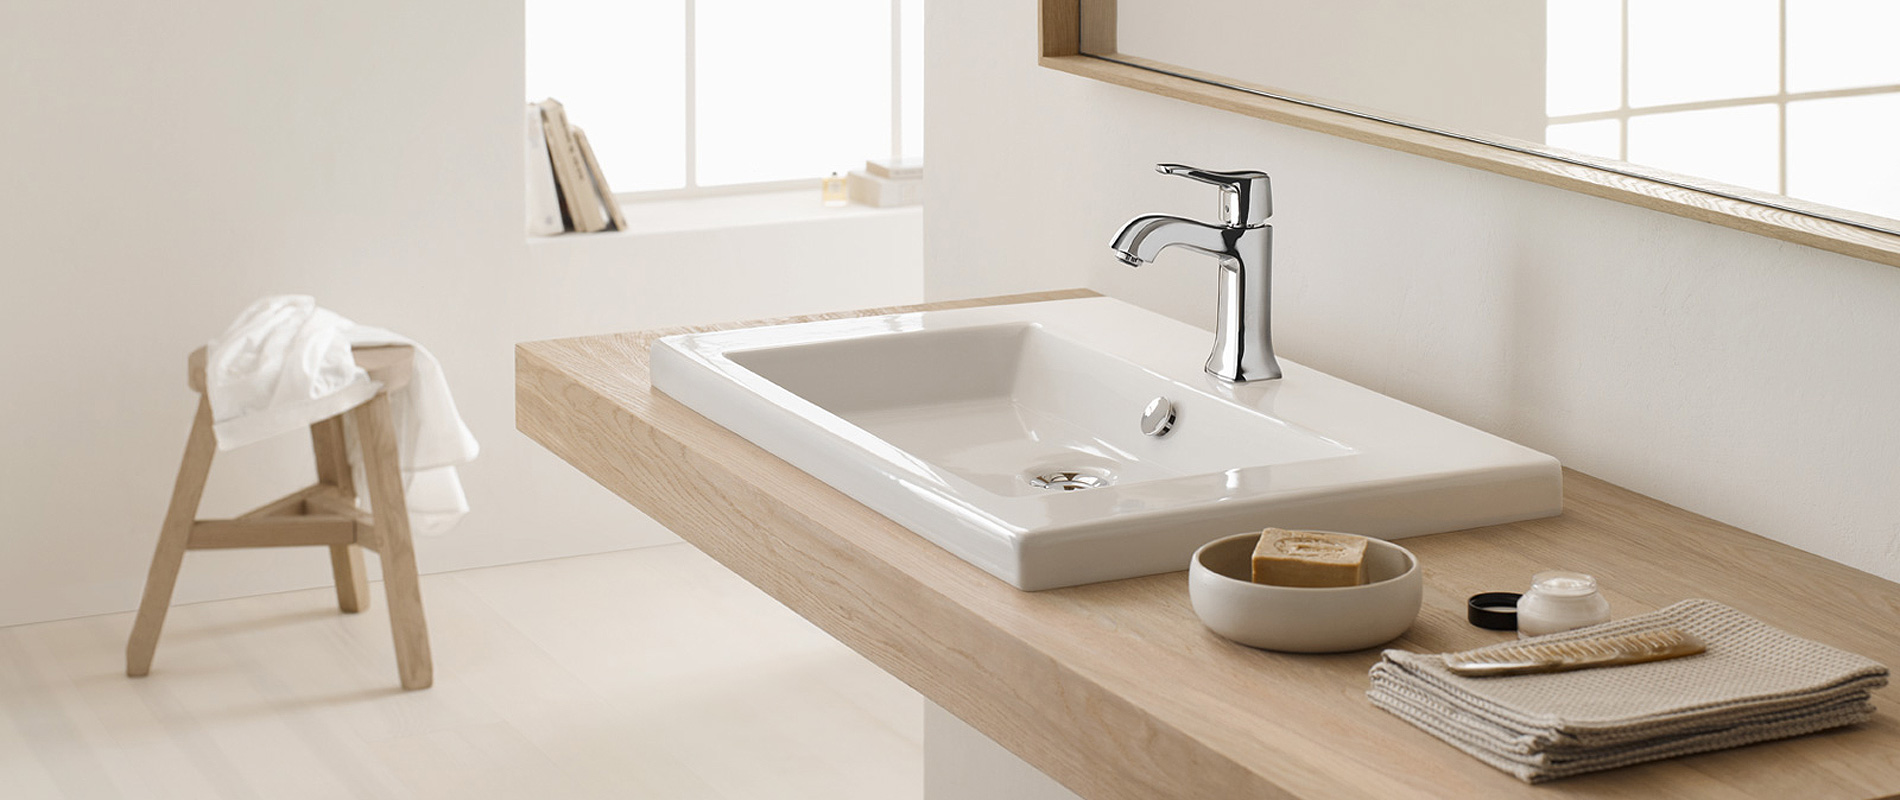 EC1 Bathrooms | Suppliers of quality bathrooms at affordable prices ...